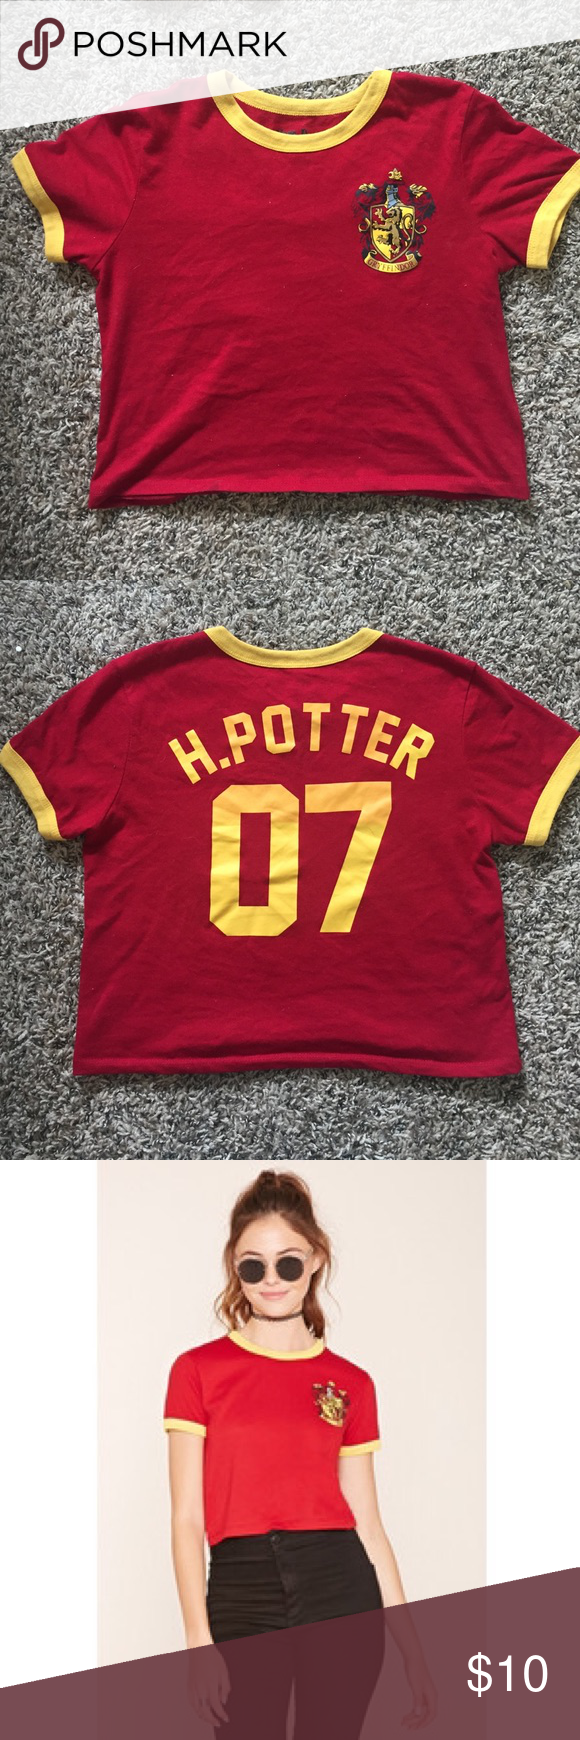 f9534504e994b1 Harry Potter Gryffindor crop top Super cute. Worn once or twice. In perfect  condition Forever 21 Tops Crop Tops